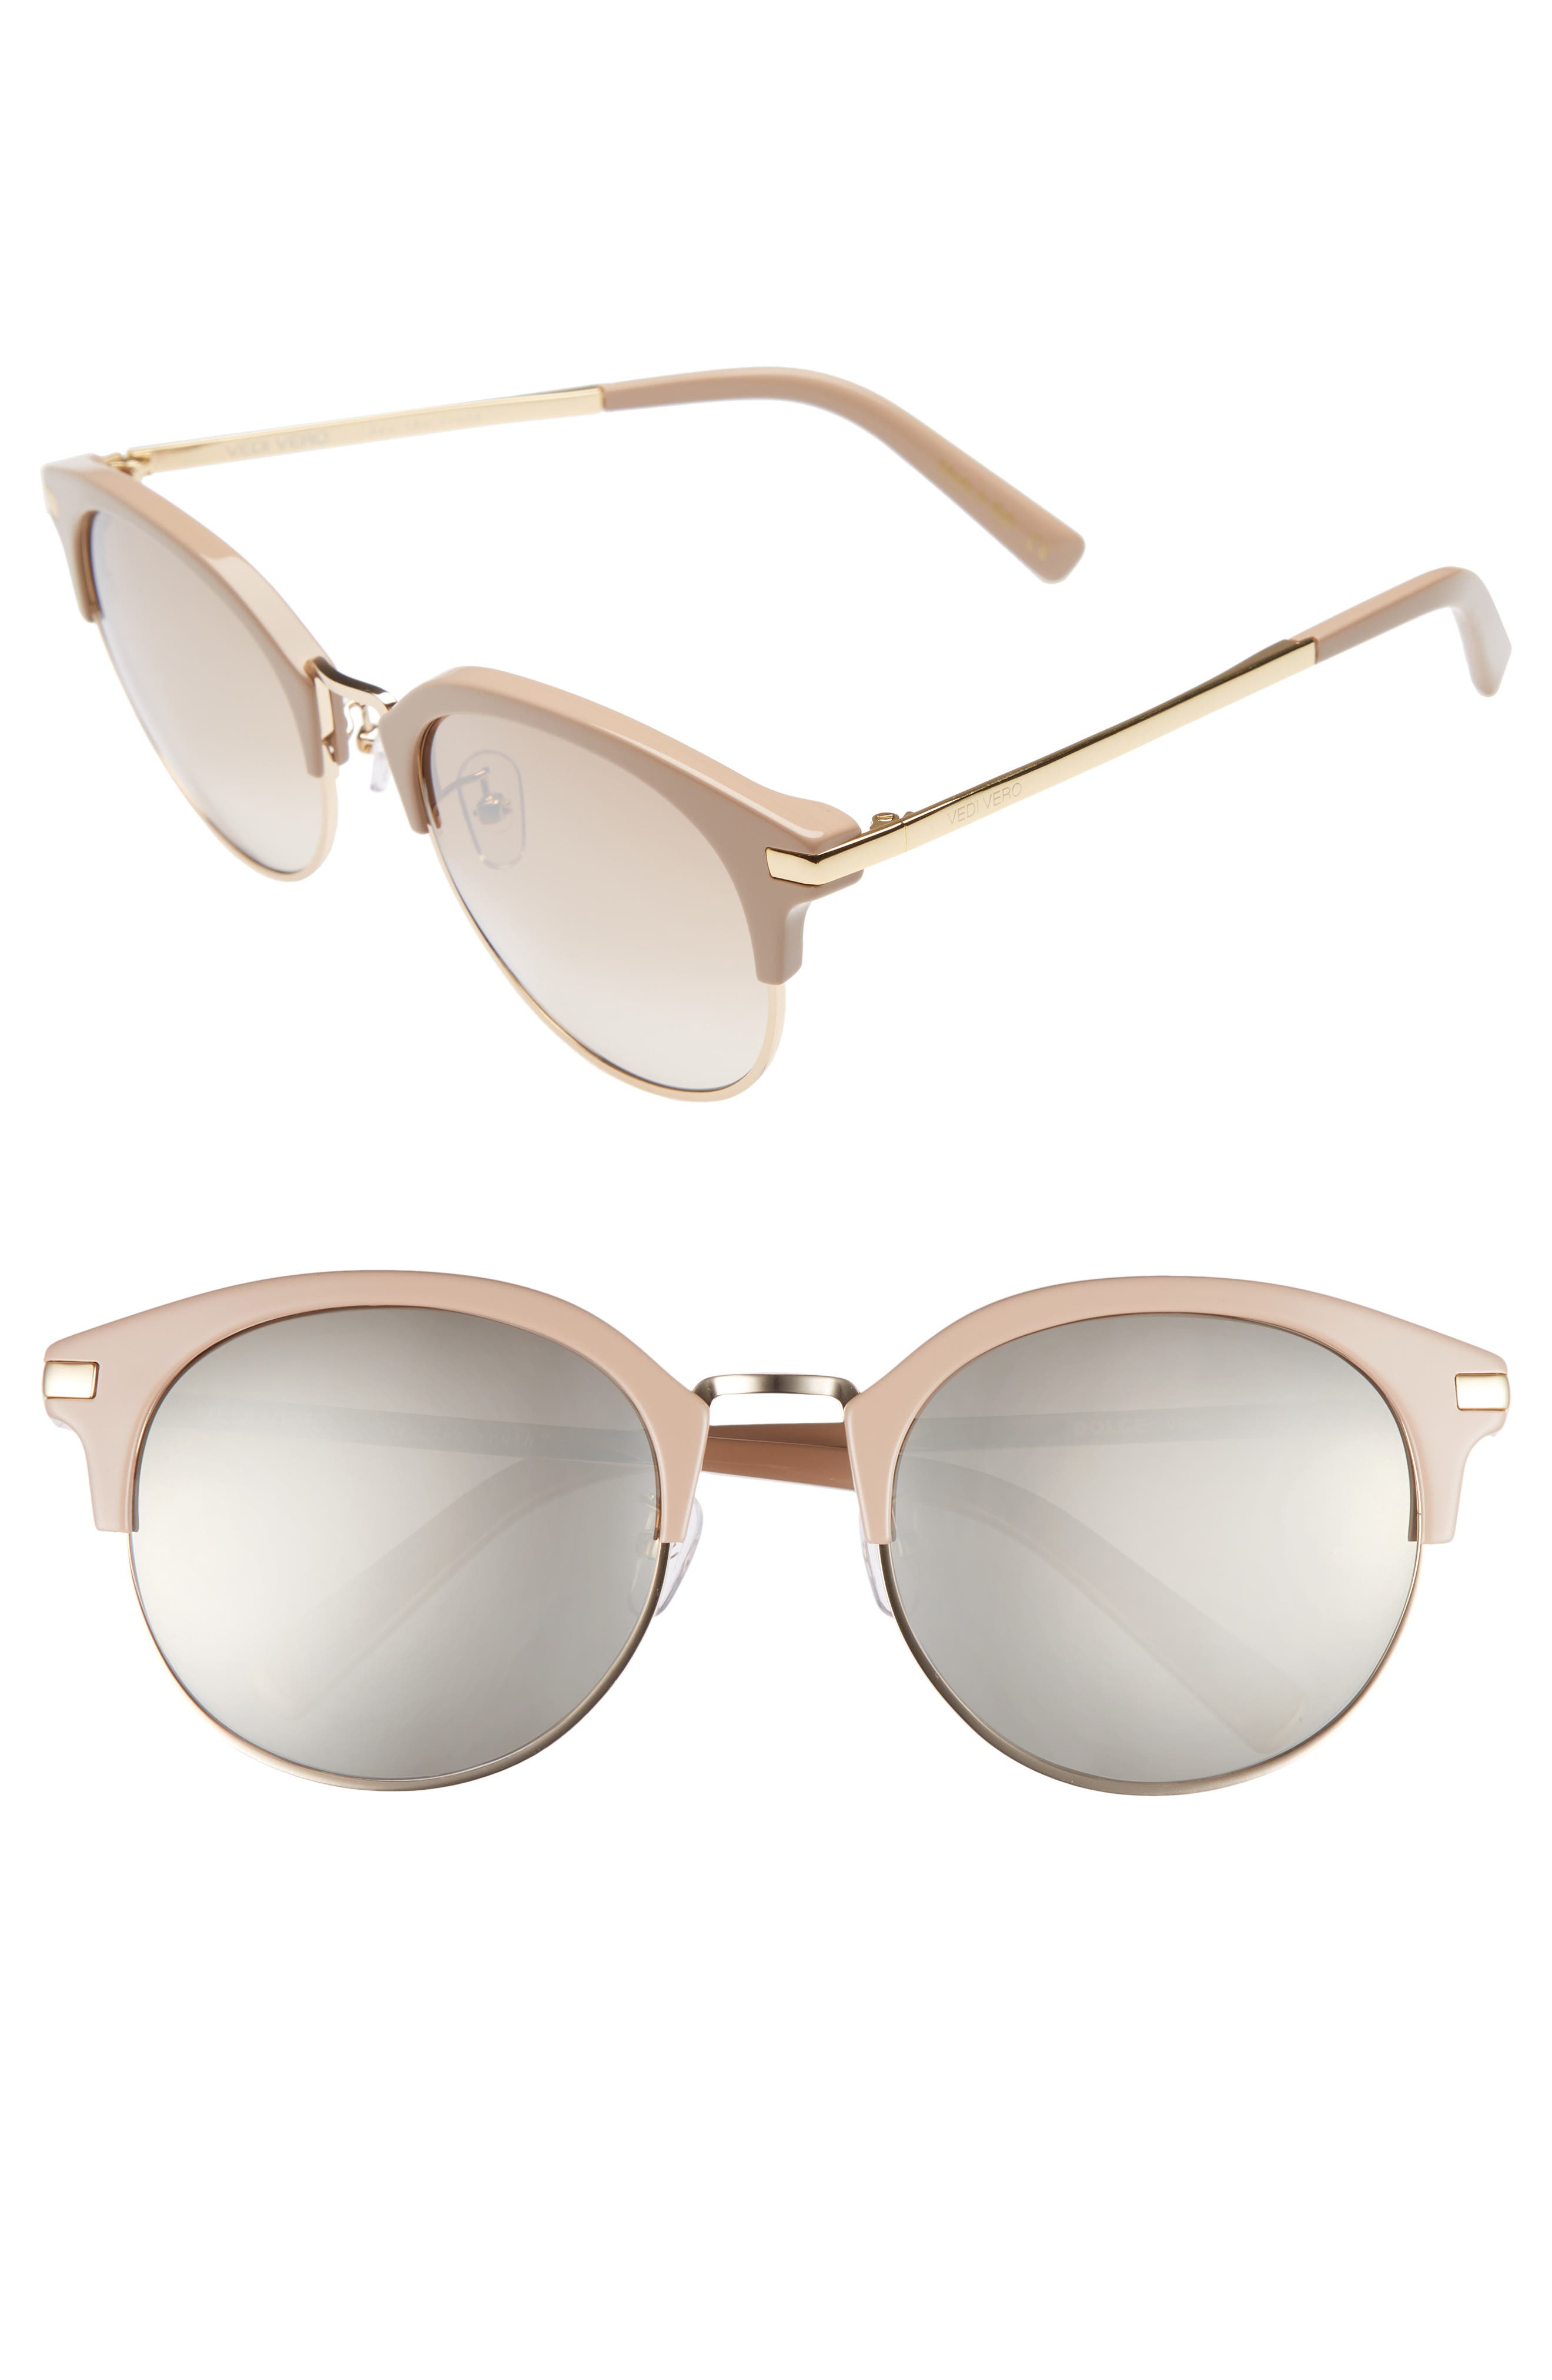 56mm Round Sunglasses,                         Main,                         color, GOLD AND BEIGE/GRADIENT BROWN